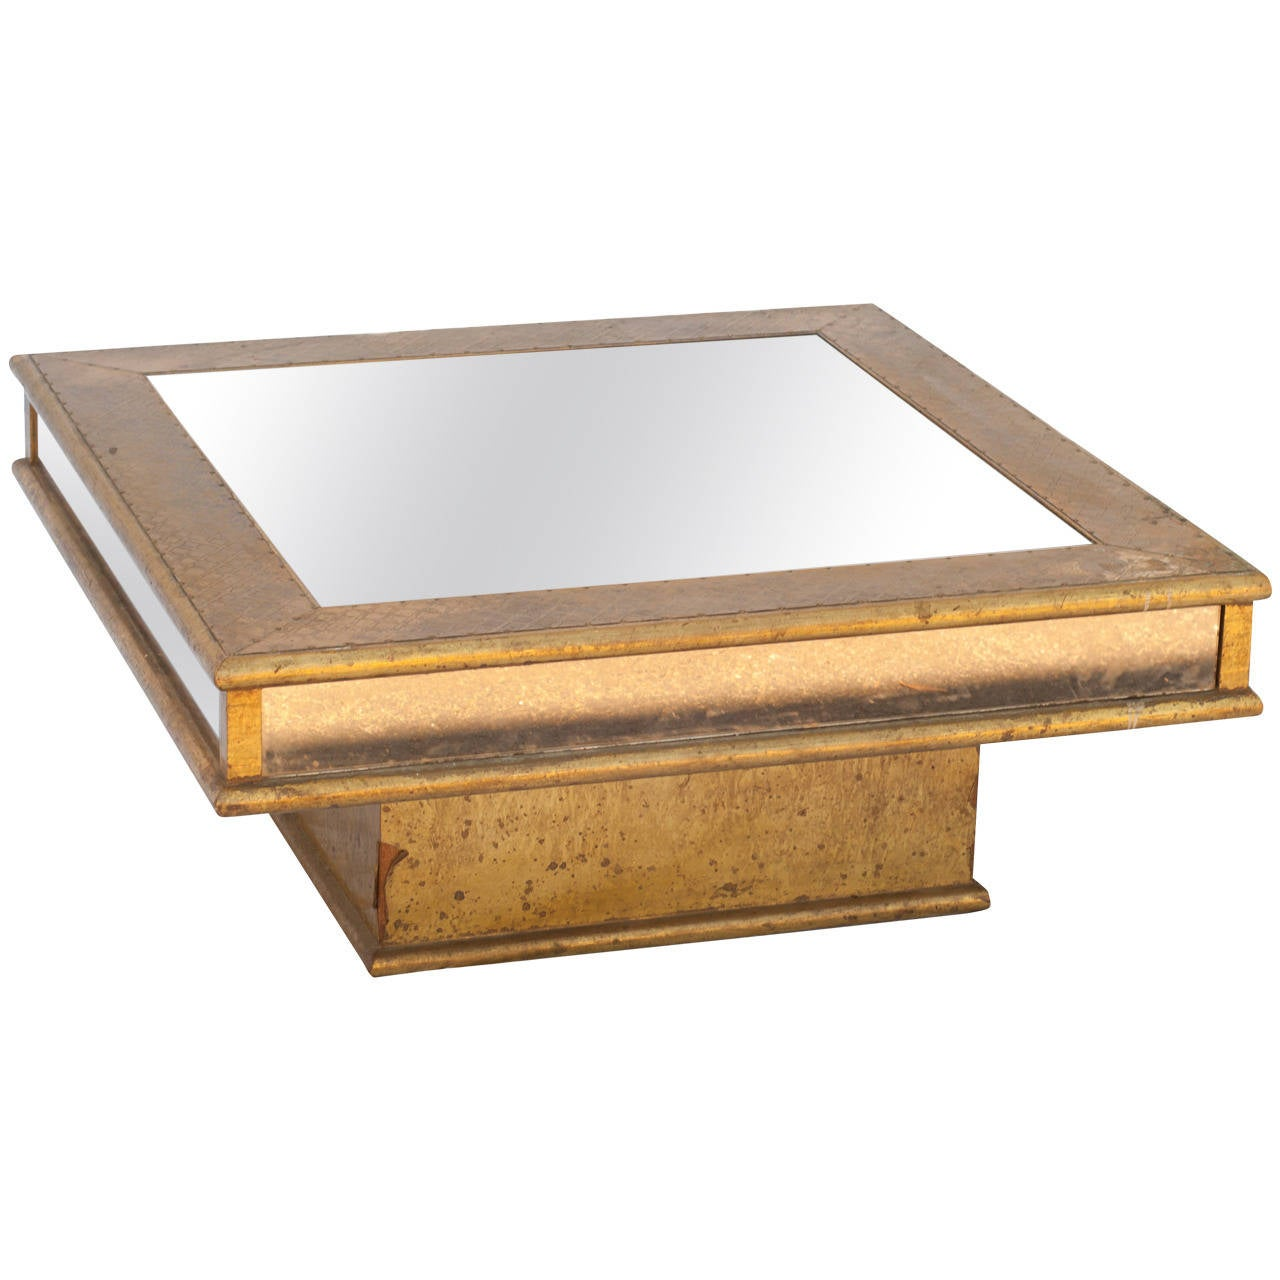 Artisanal Hammered Brass Coffee Table At 1stdibs